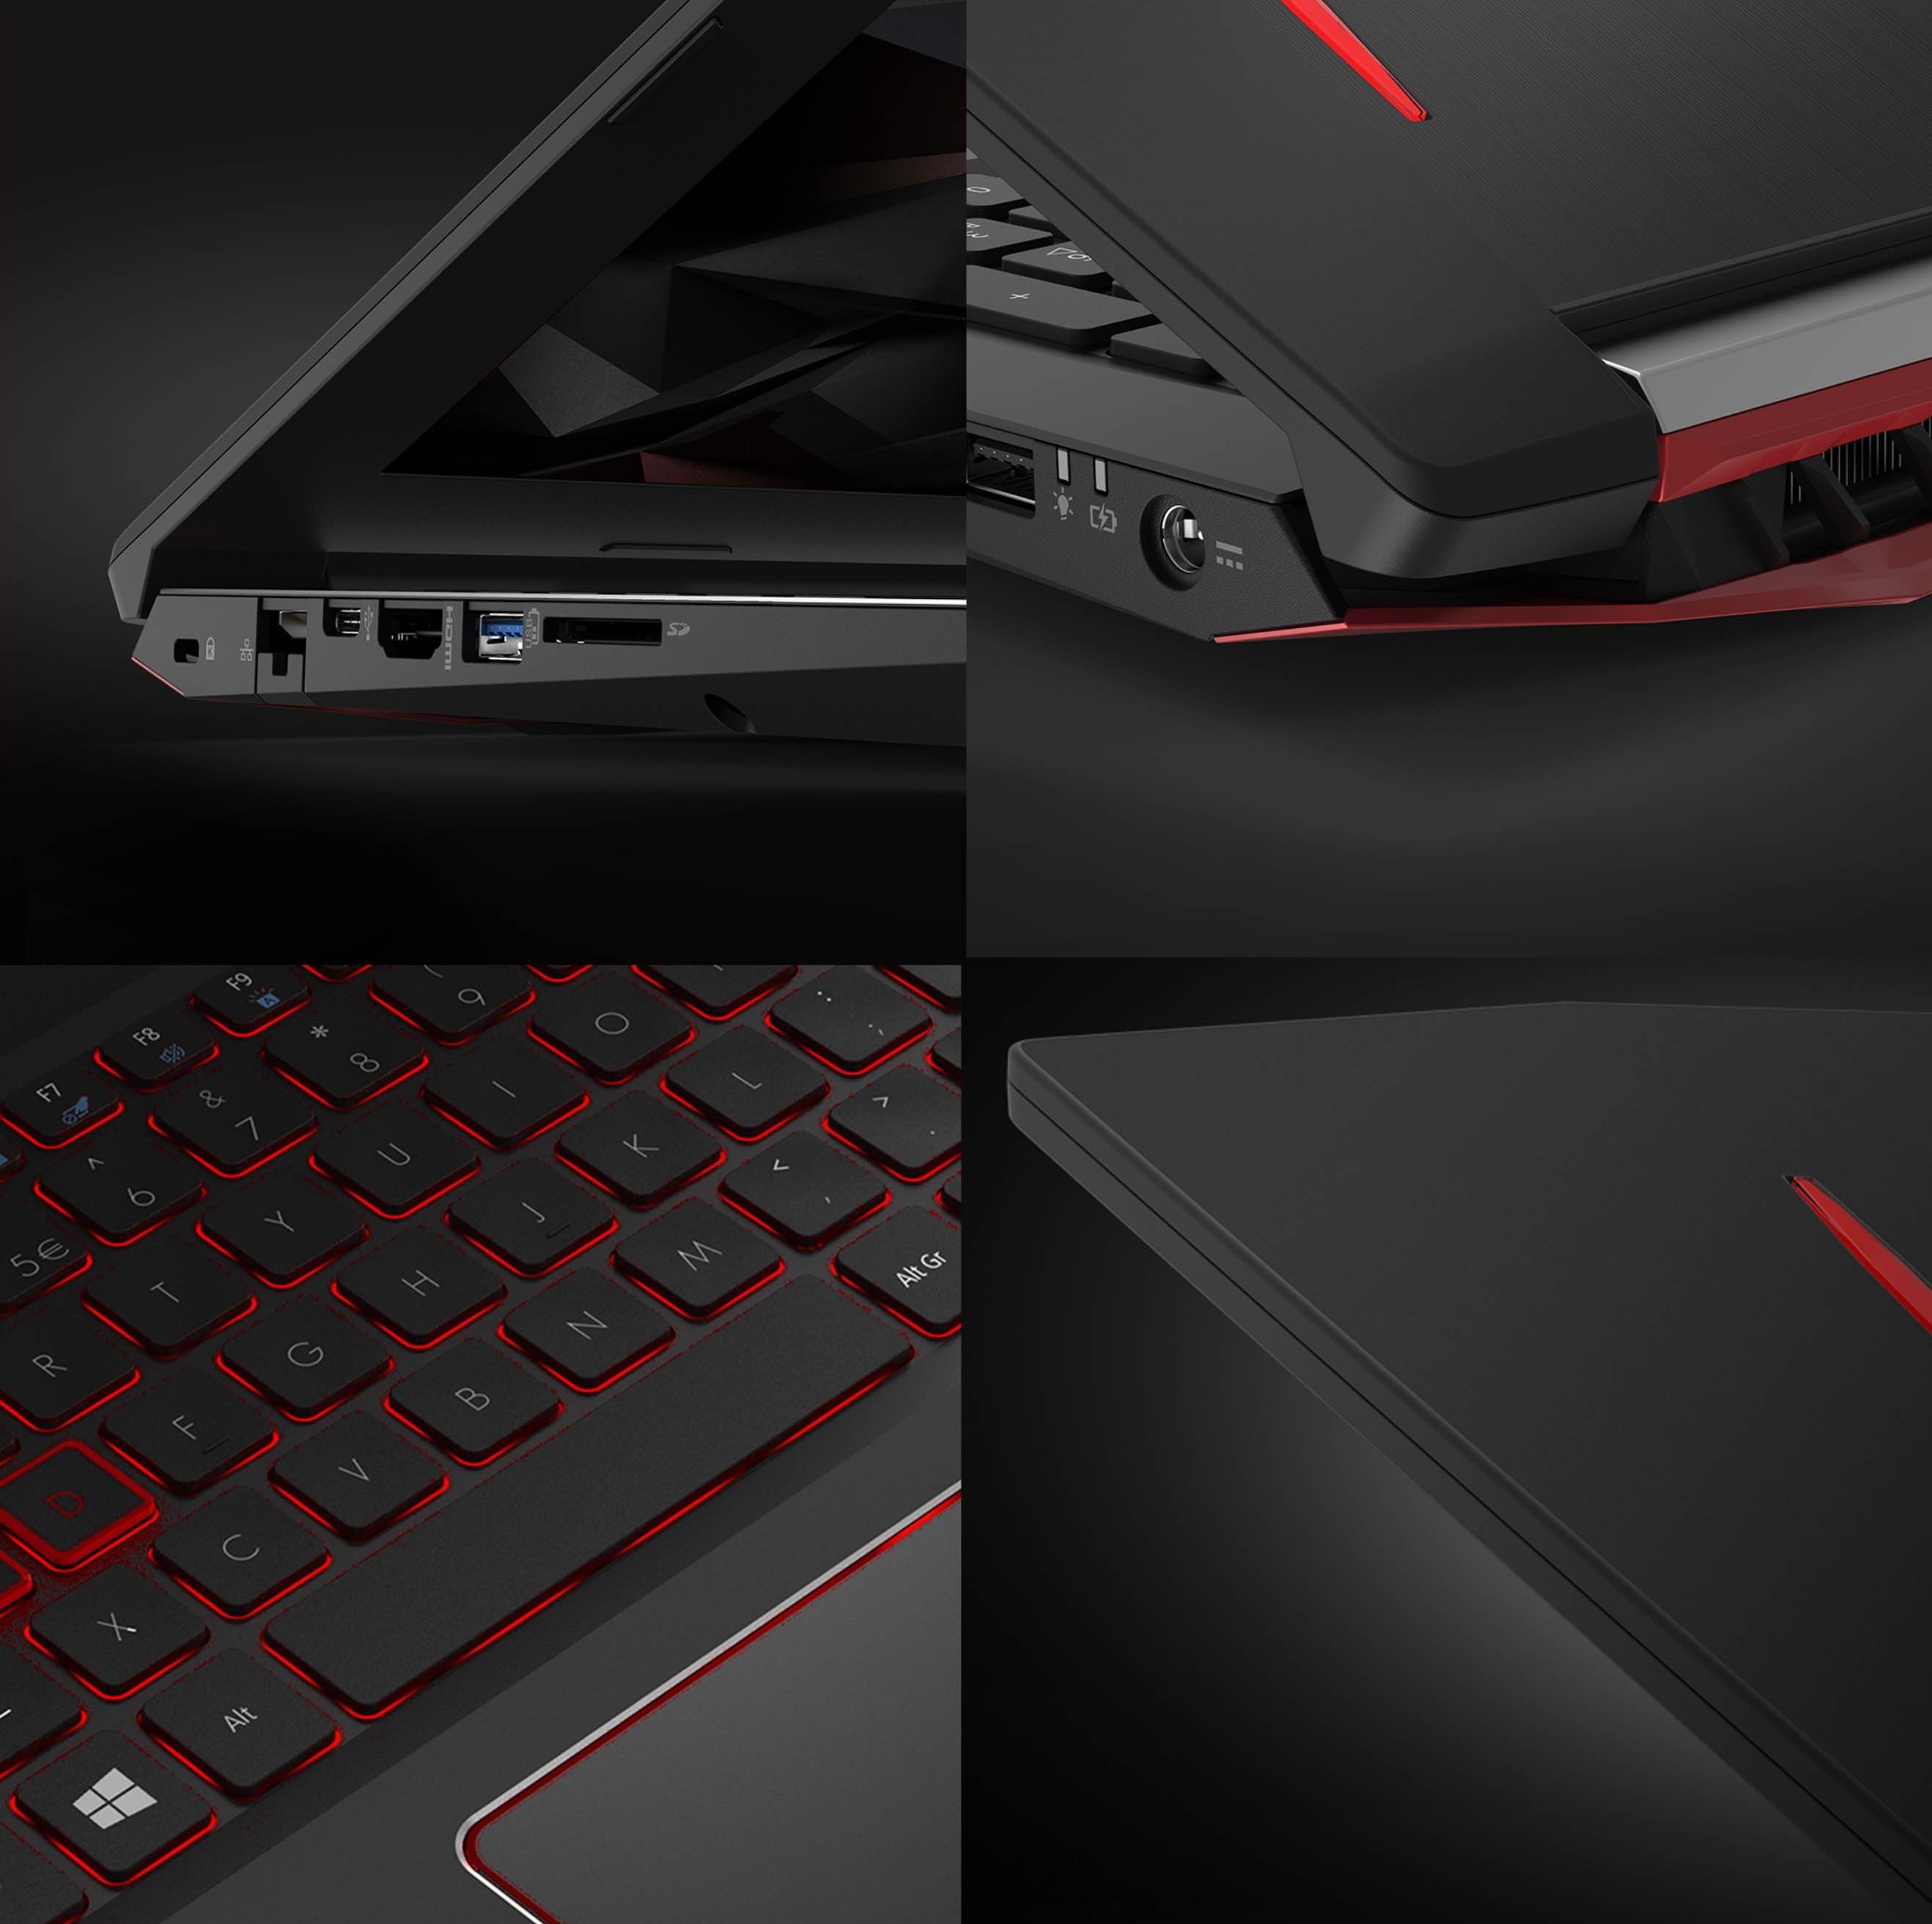 Predator Helios 300 Gaming Laptop standout features